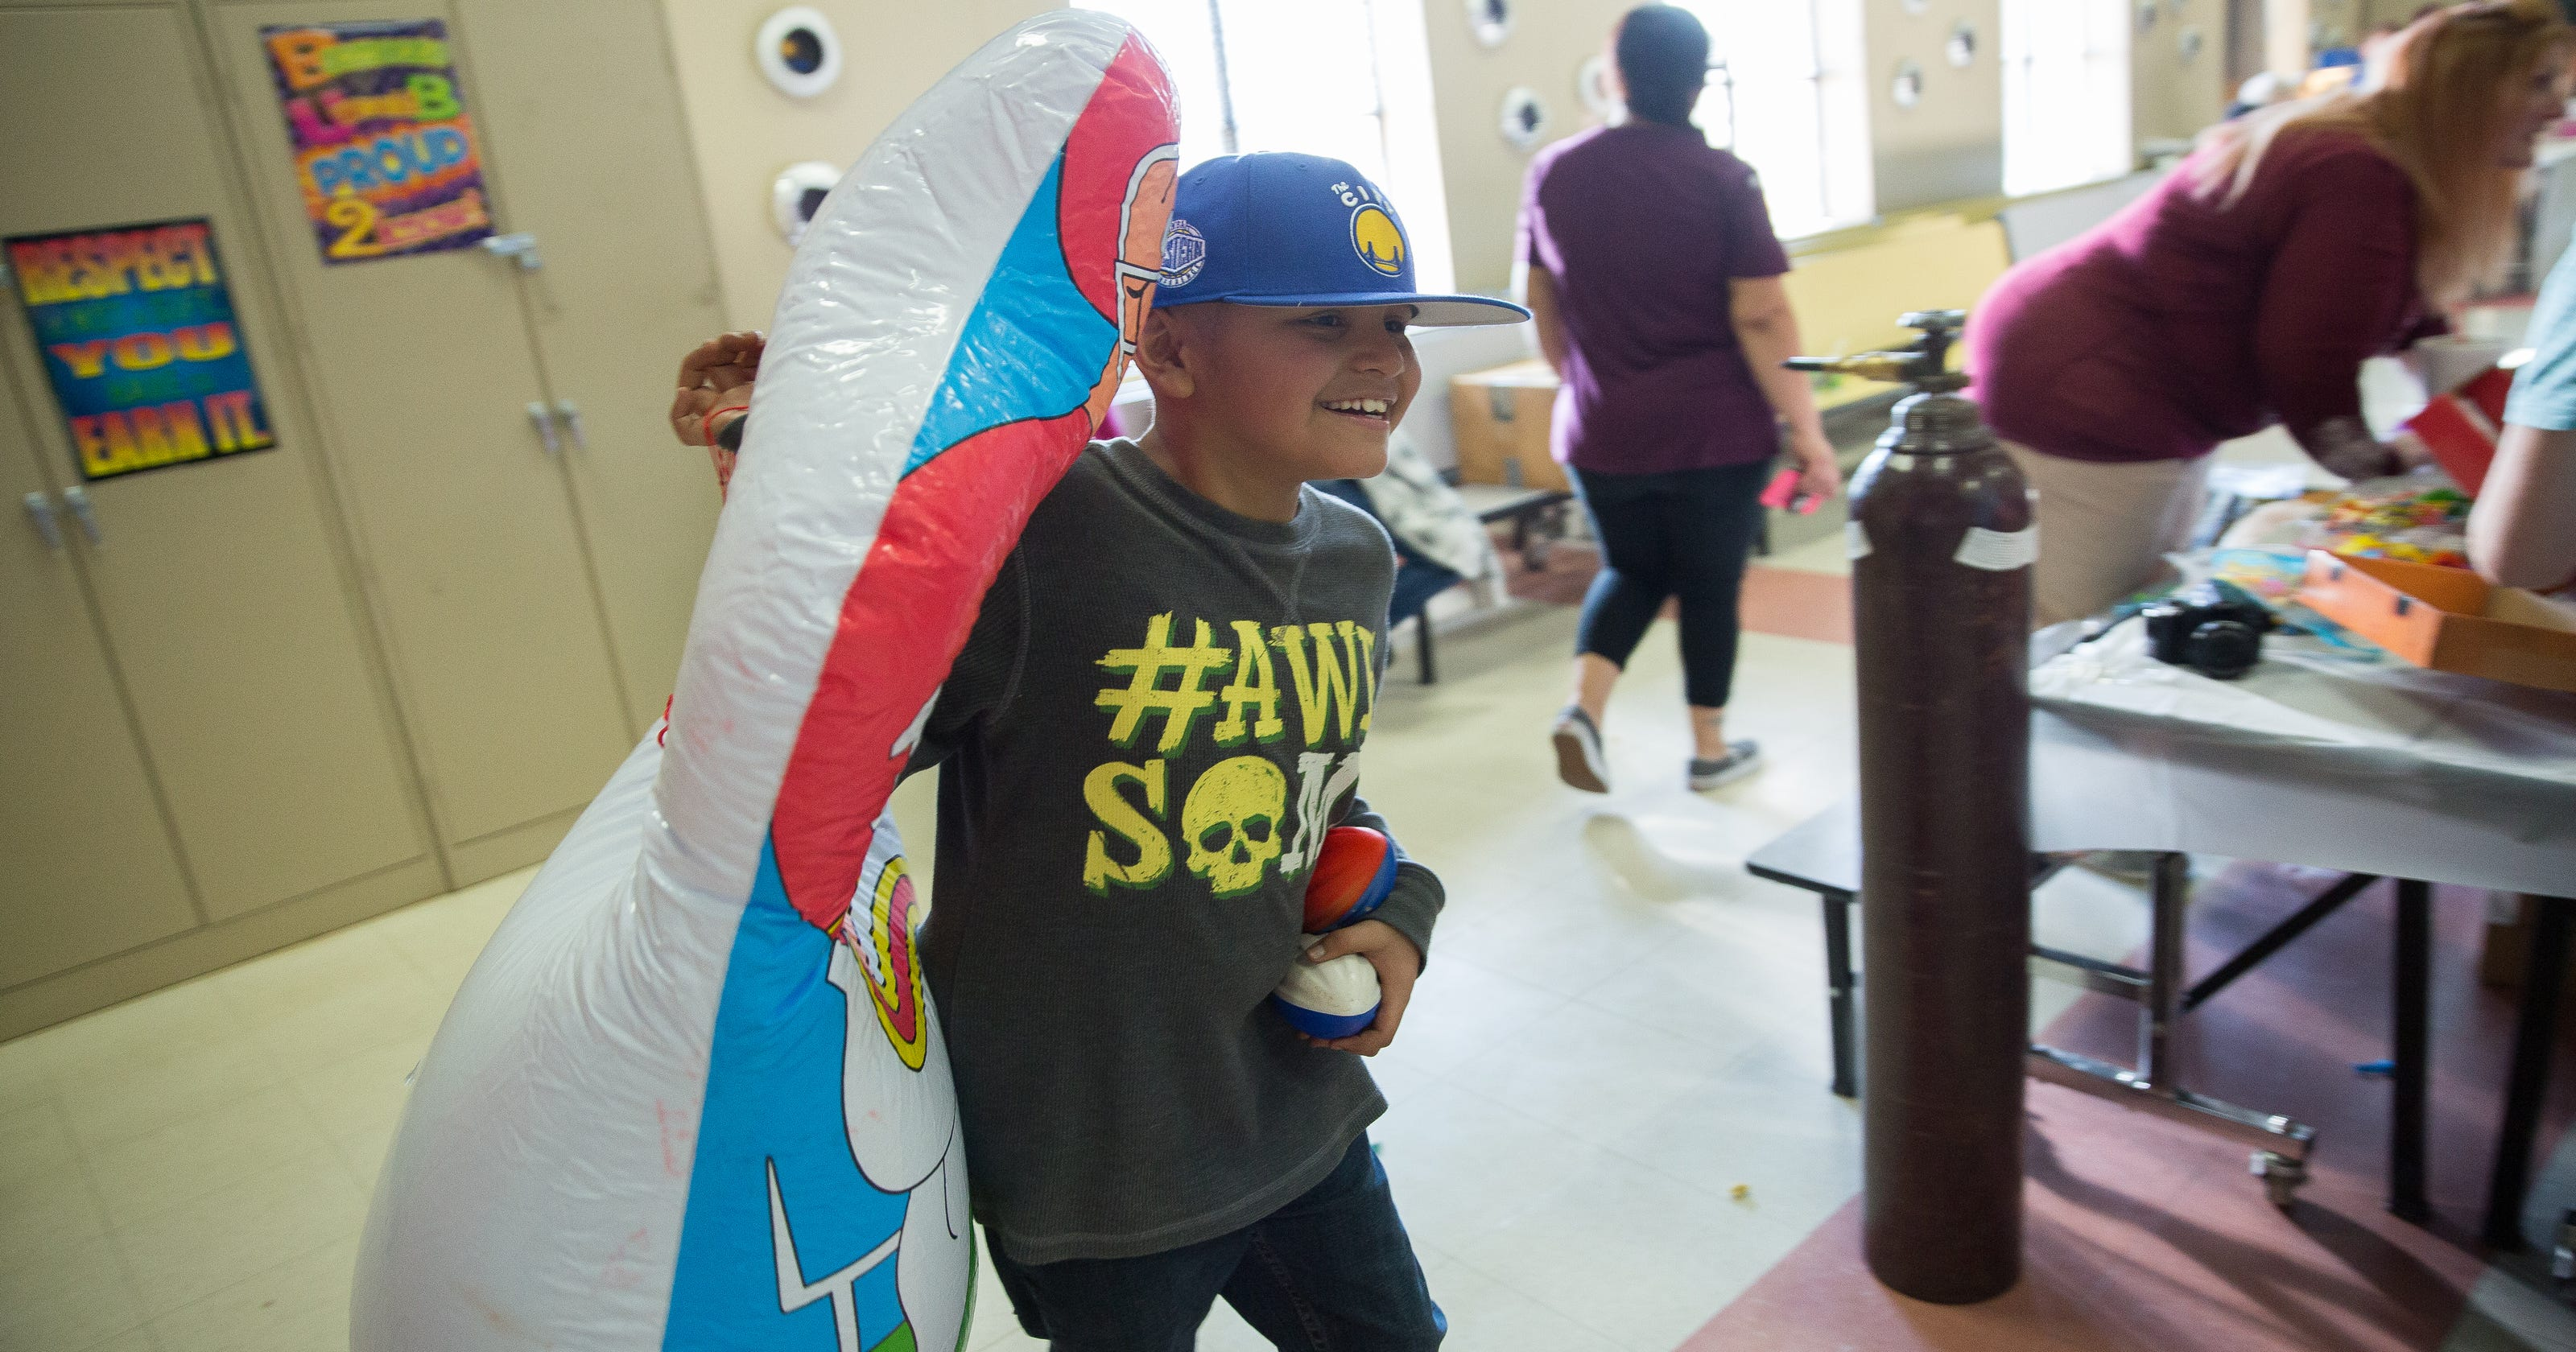 e4e7a8c74 Community support grows for boy with bone cancer